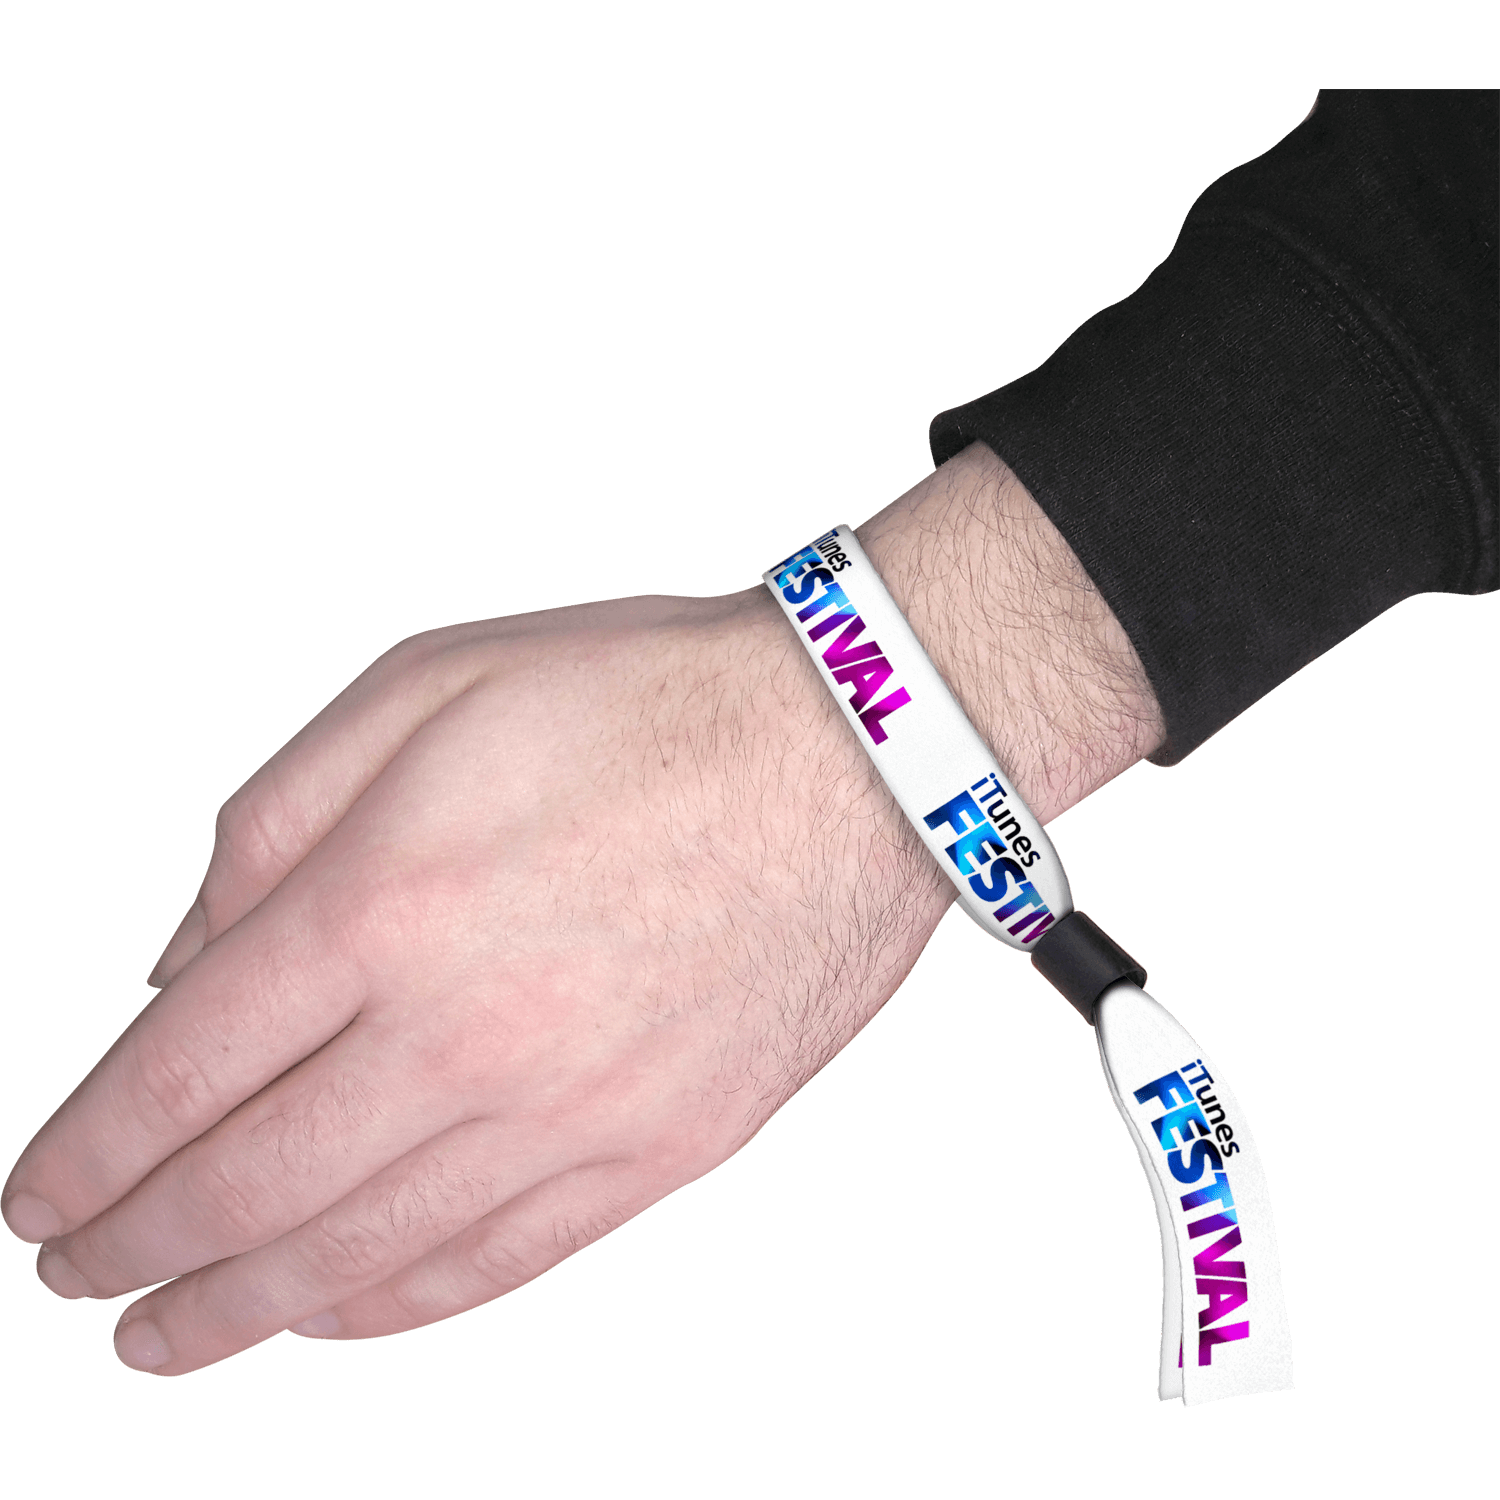 Festival Fabric Wristbands - 15mm